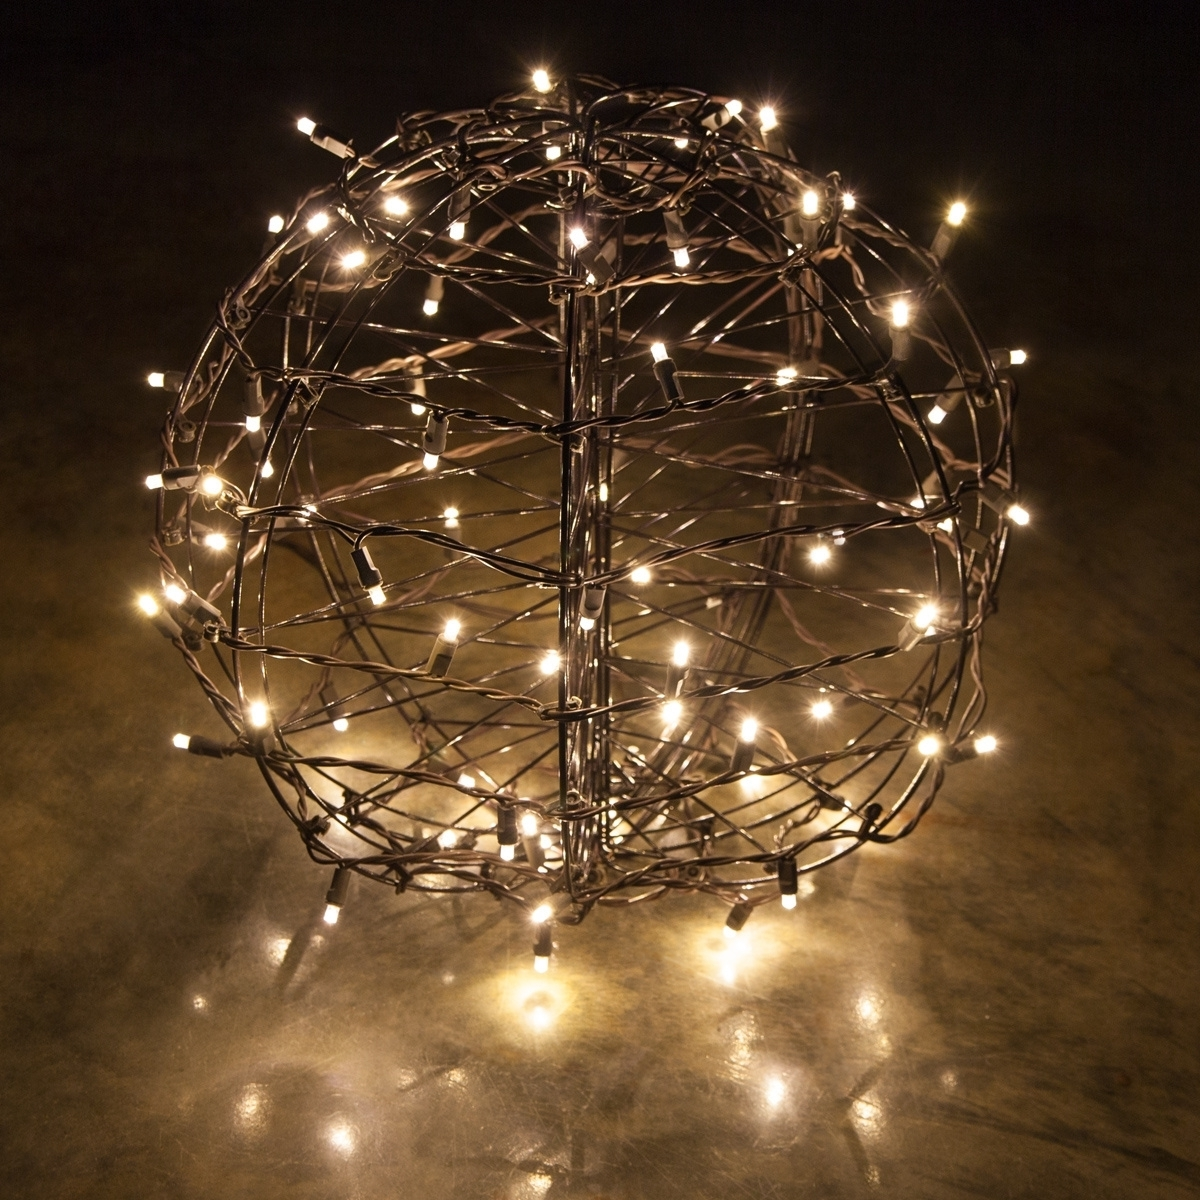 Hanging Outdoor Christmas Lights In Trees Inside Well Liked Outdoor Hanging Sphere Lights • Outdoor Lighting (View 10 of 20)